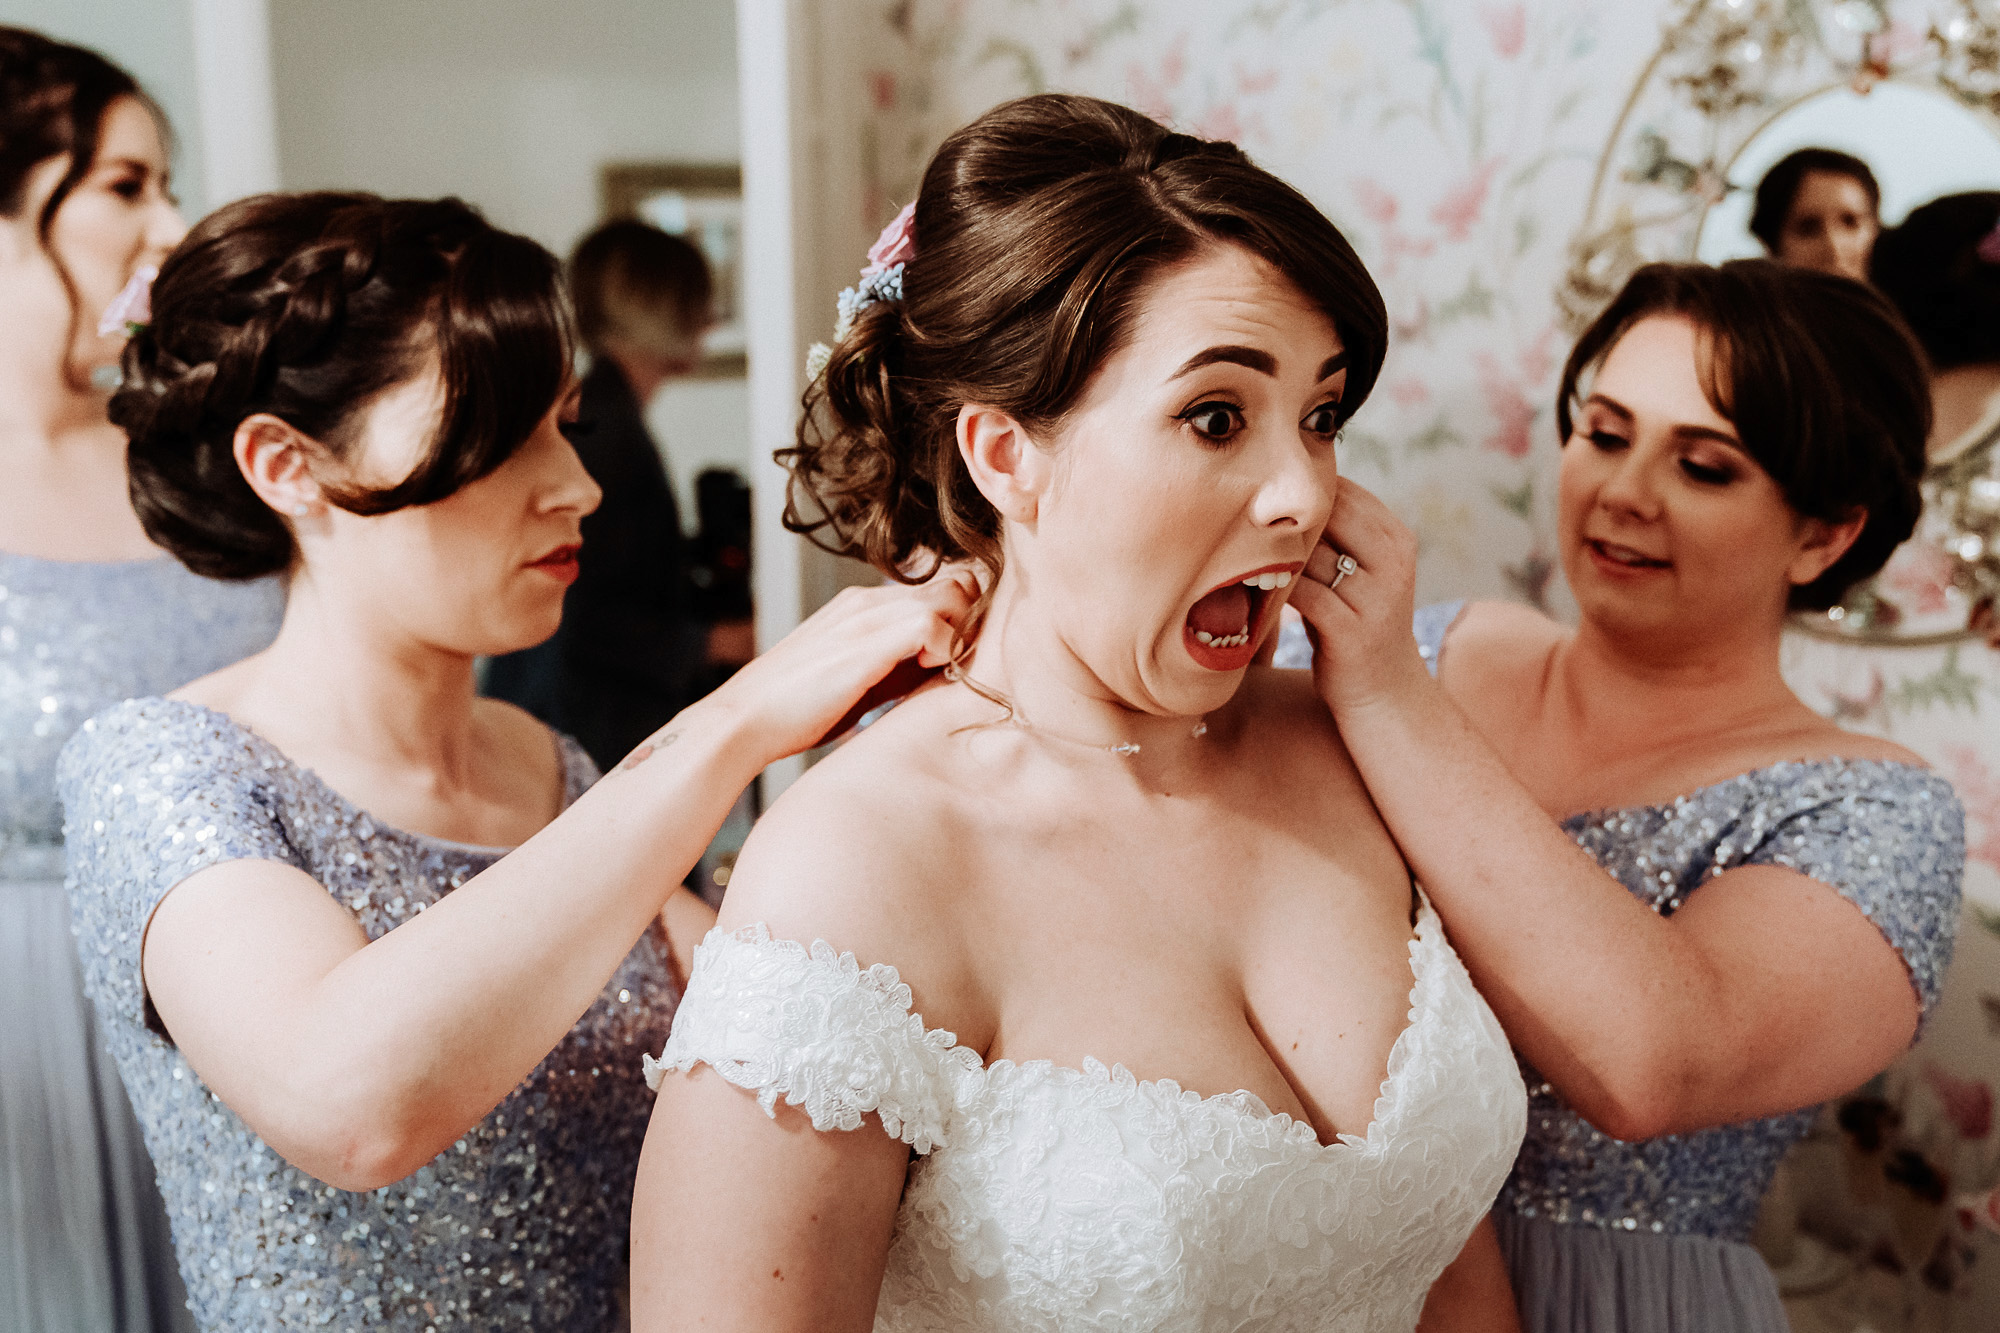 bride yelling when earrings put in